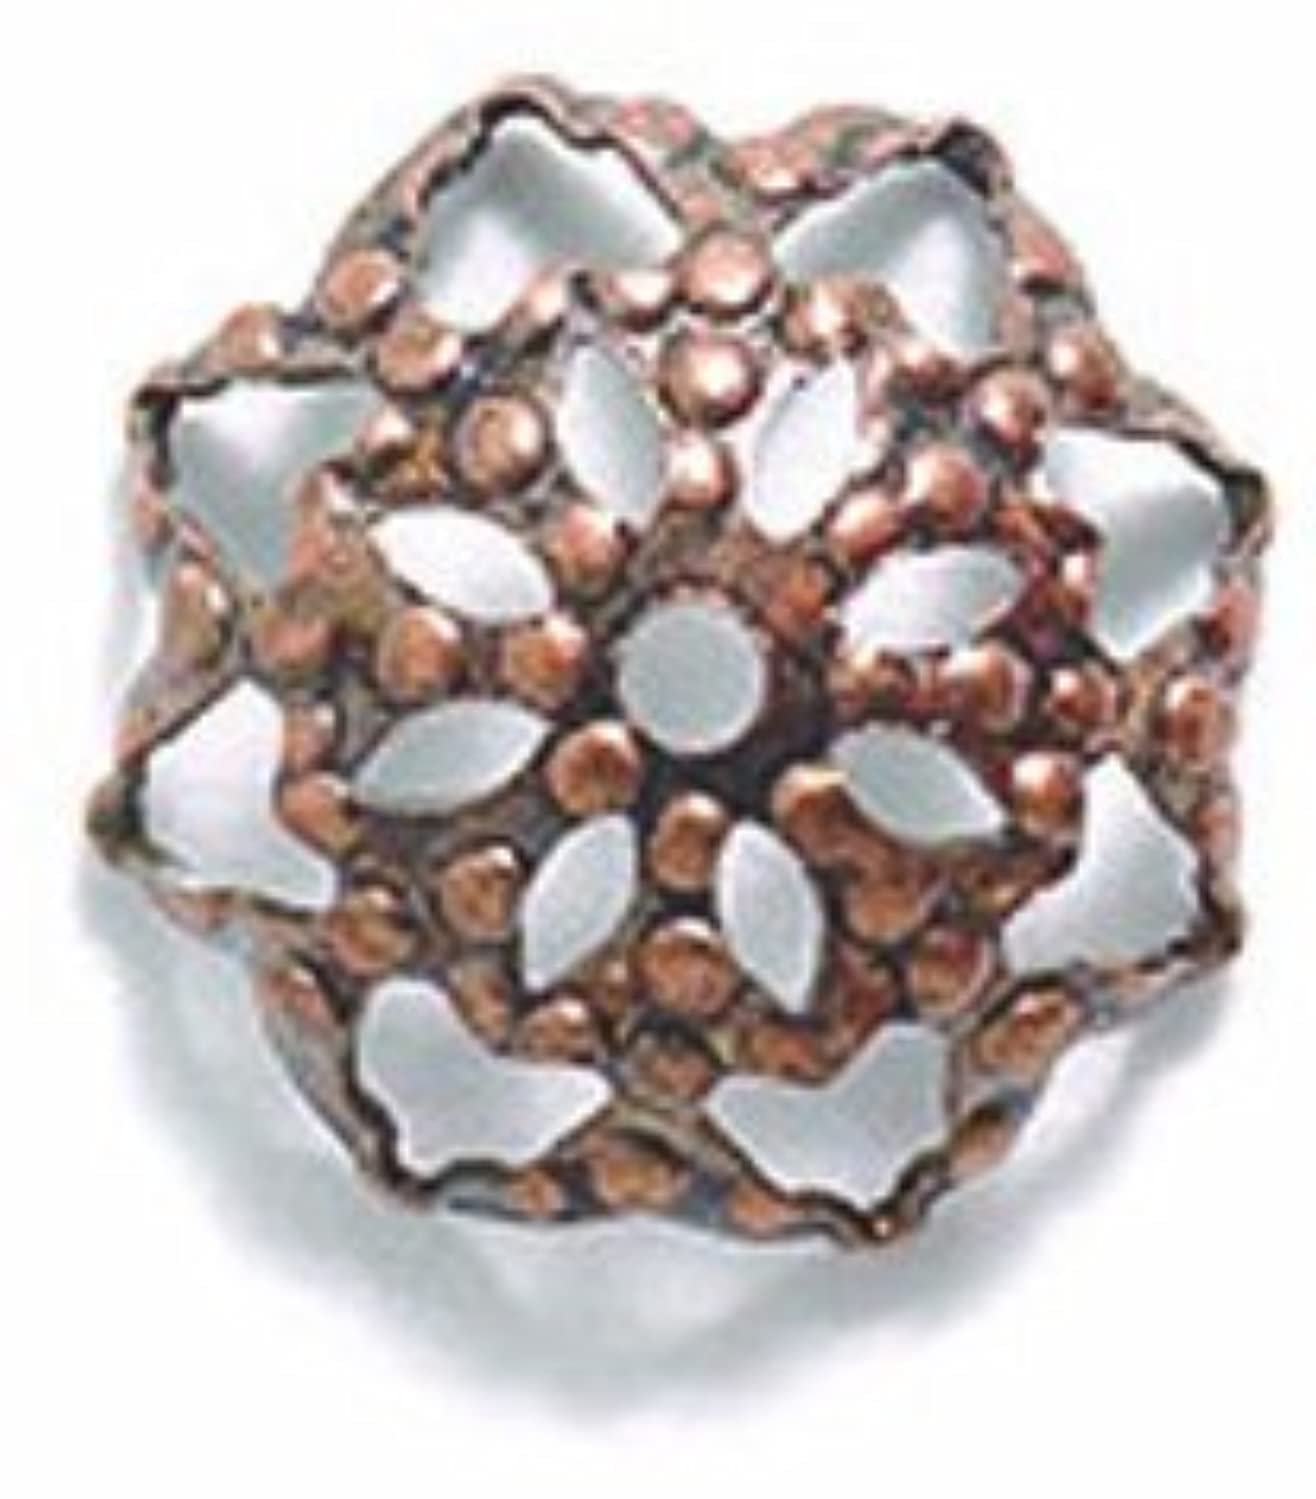 Shipwreck Beads Electroplated Brass Filigree Bead Cap, 10mm, Metallic, Antique Copper, 25-Piece